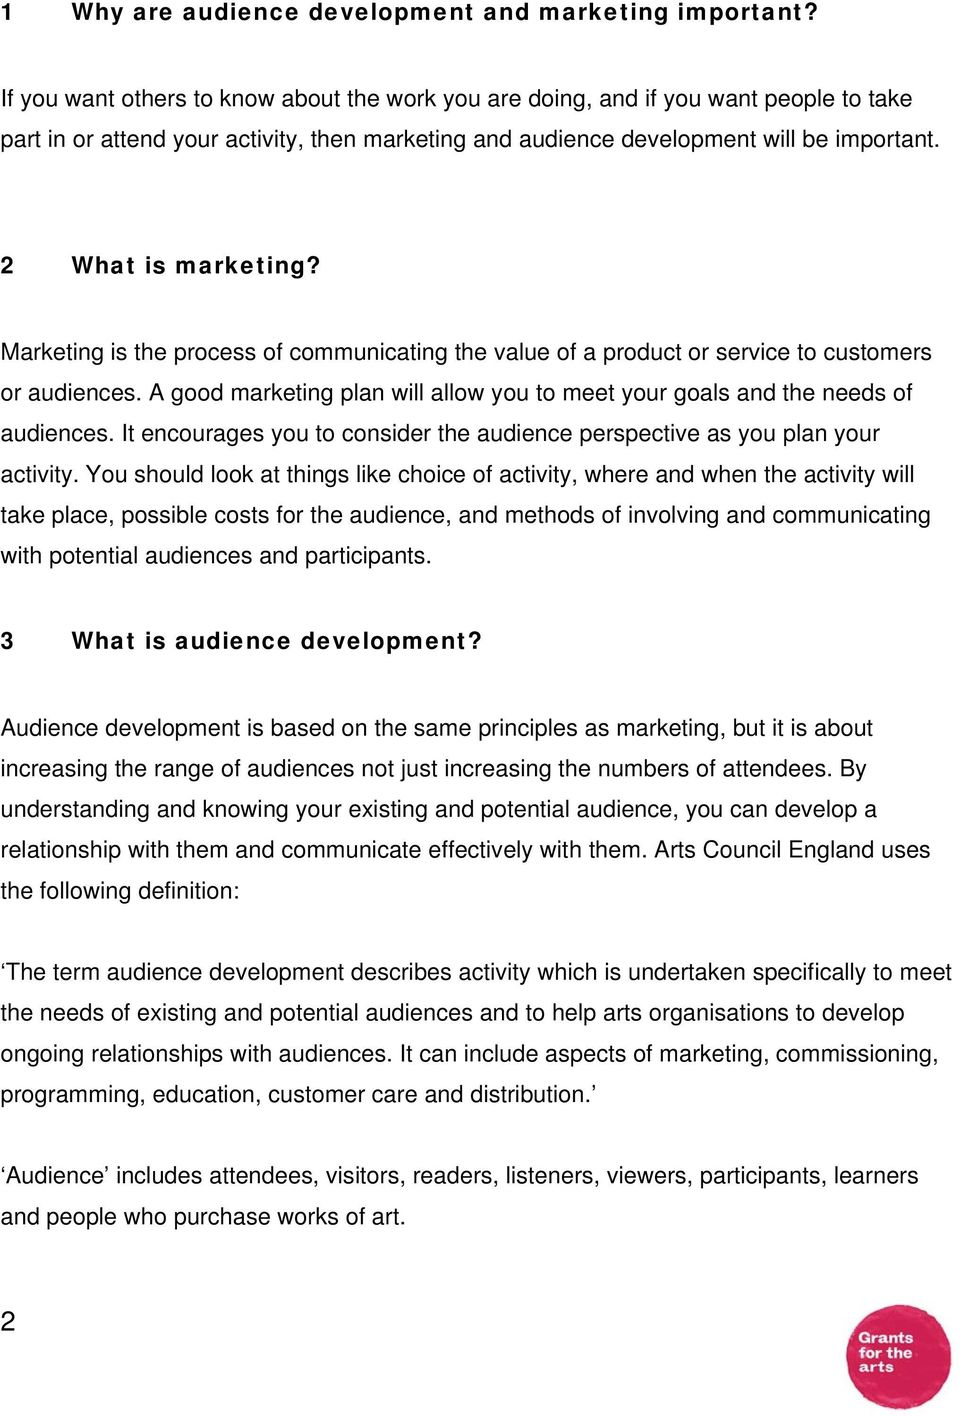 Marketing is the process of communicating the value of a product or service to customers or audiences. A good marketing plan will allow you to meet your goals and the needs of audiences.